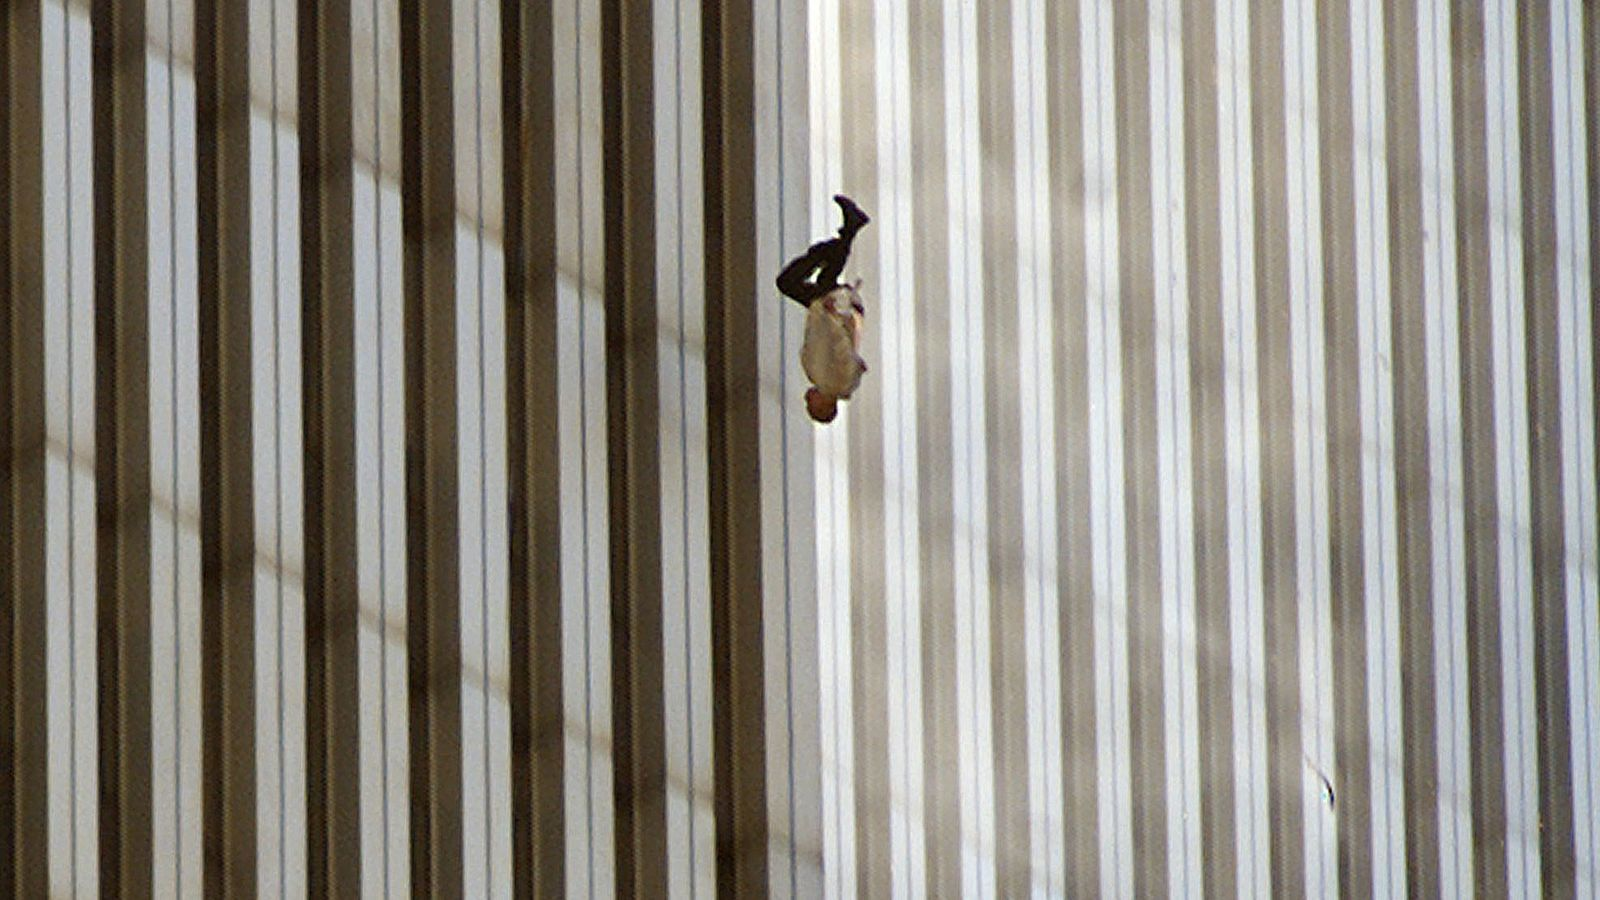 Who Was the Falling Man from 9/11? - Falling Man Identity